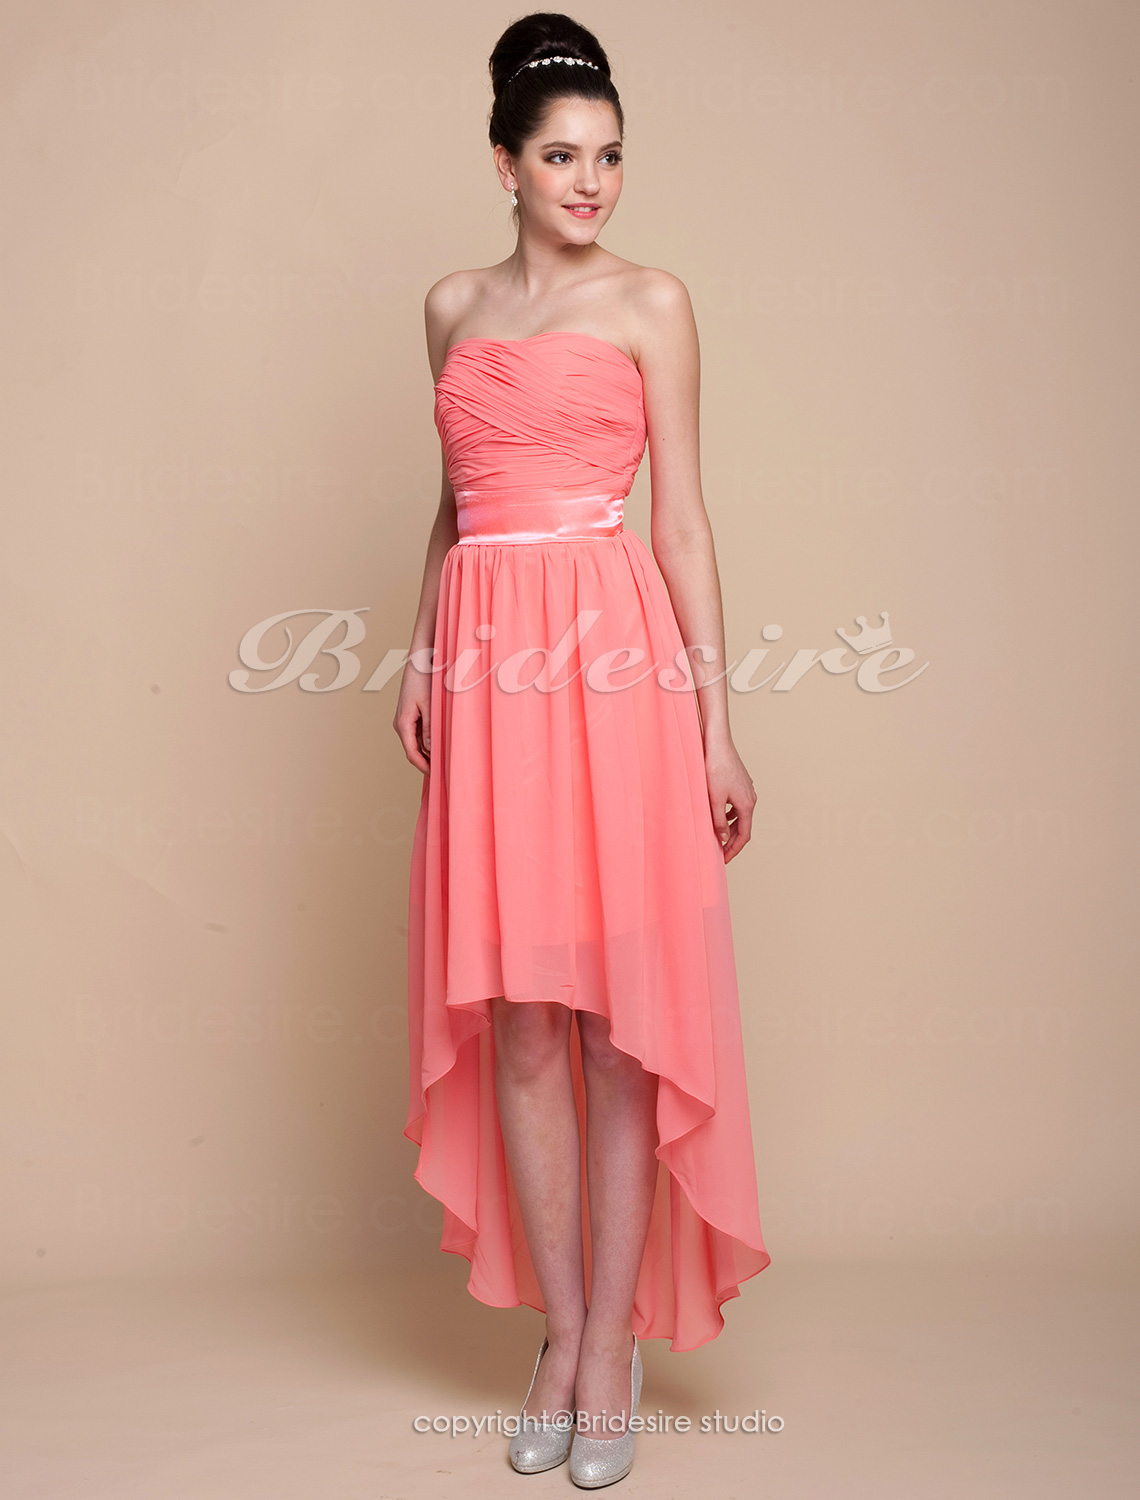 A-line Asymmetrical Chiffon Strapless Bridesmaid Dress